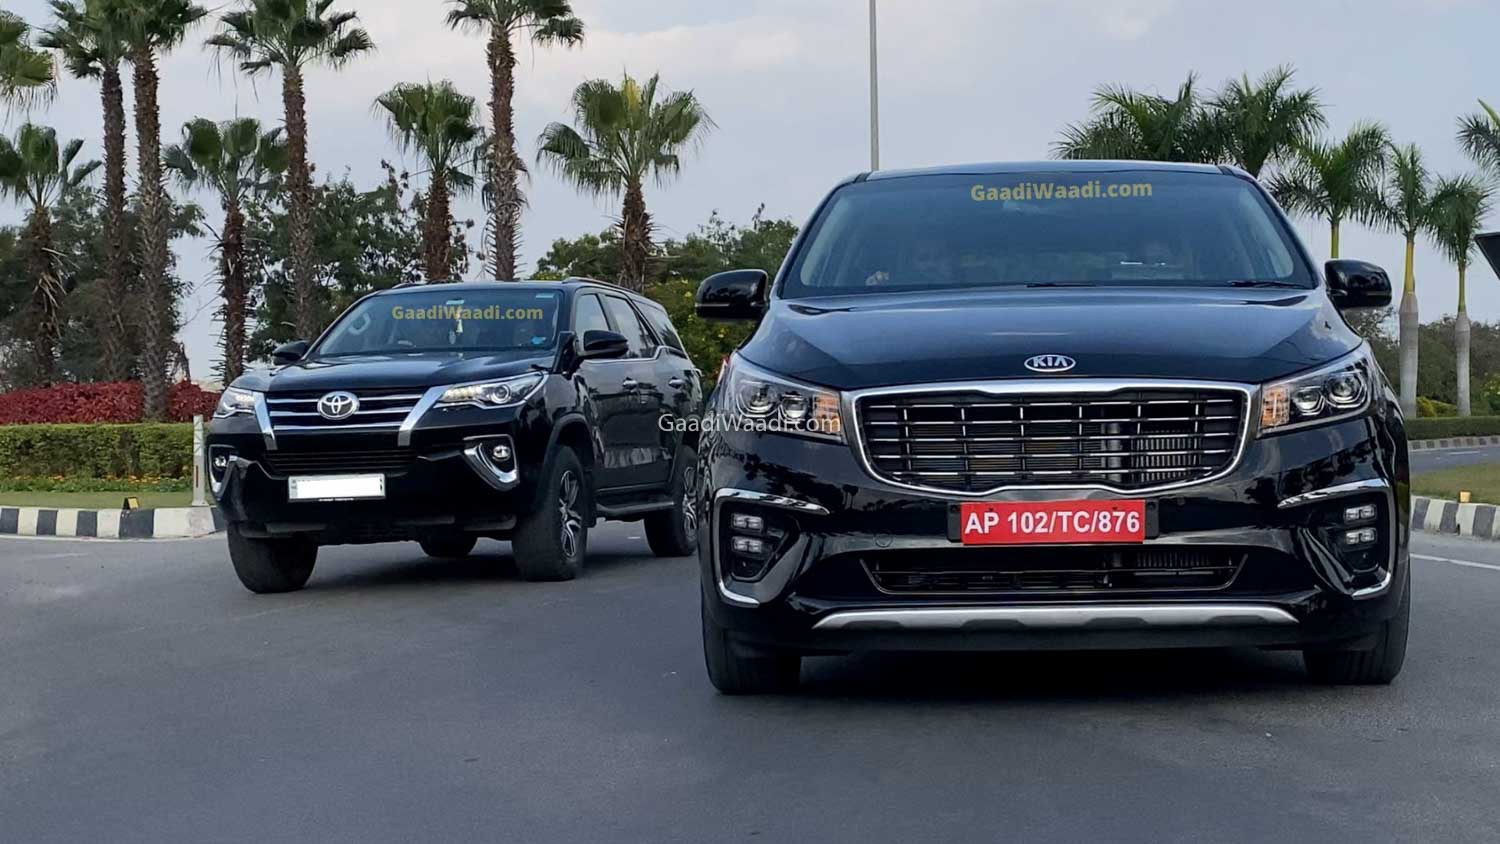 Kia Carnival Vs Toyota Fortuner – Specs & Features Comparison